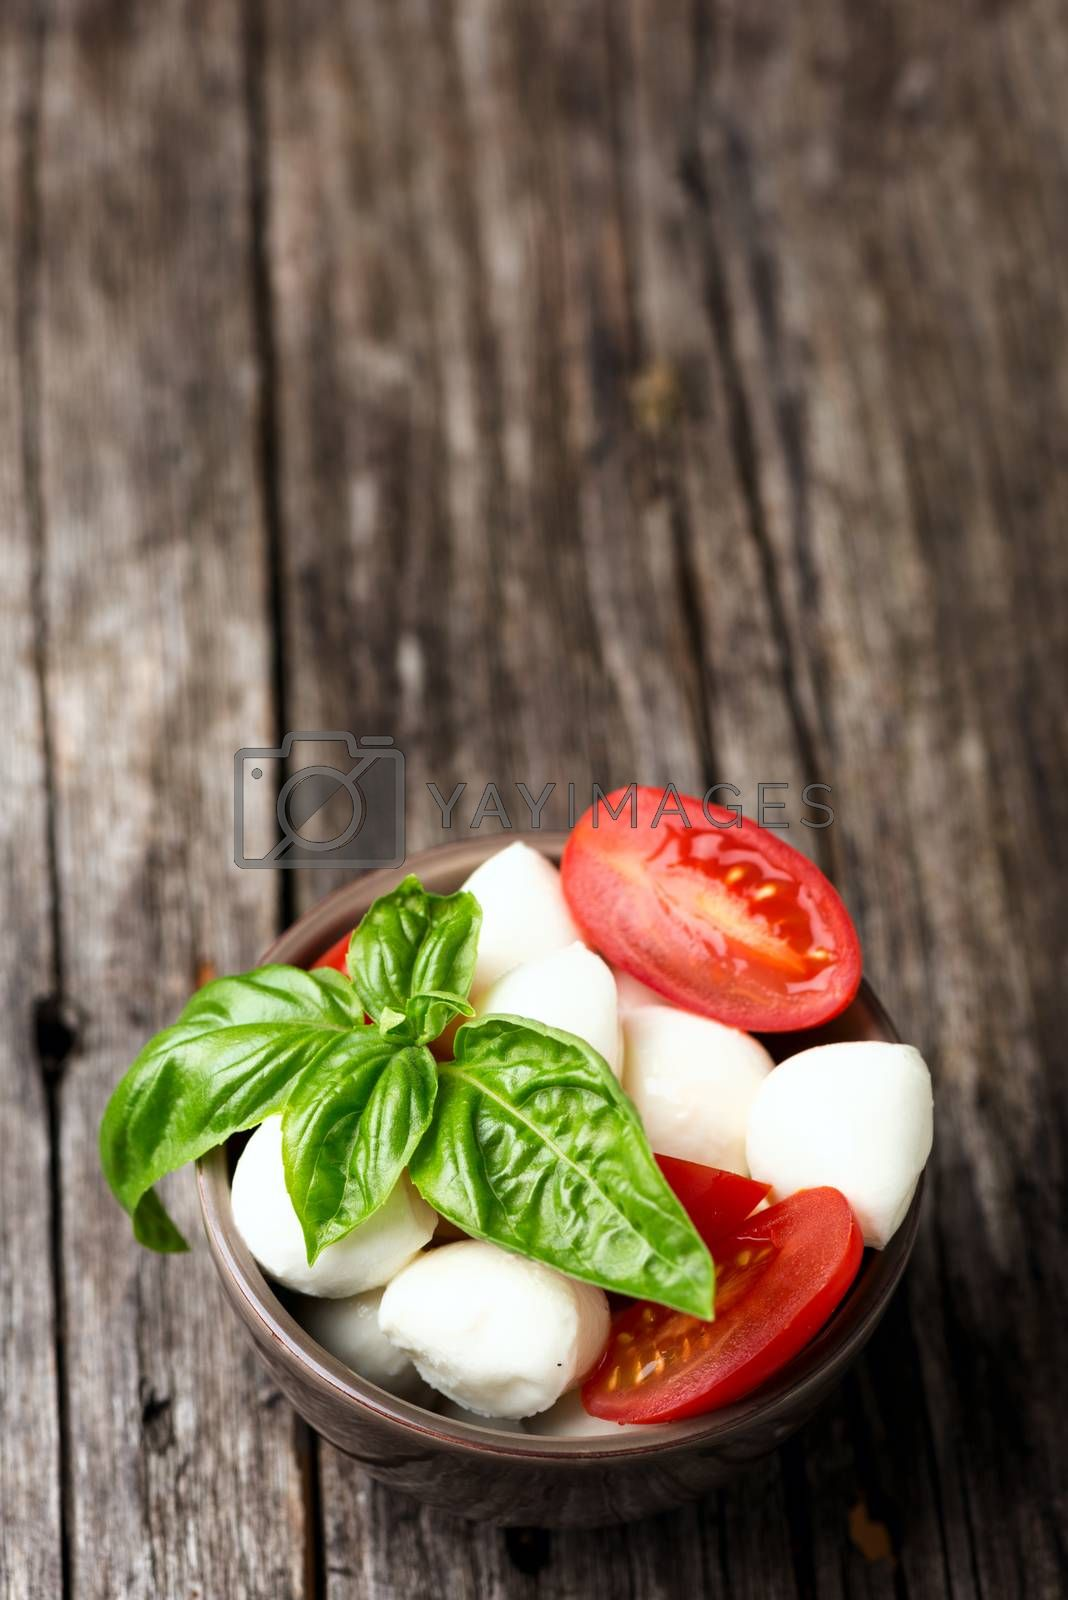 Tomato and mozzarella with basil leaves in bowl by Nanisimova